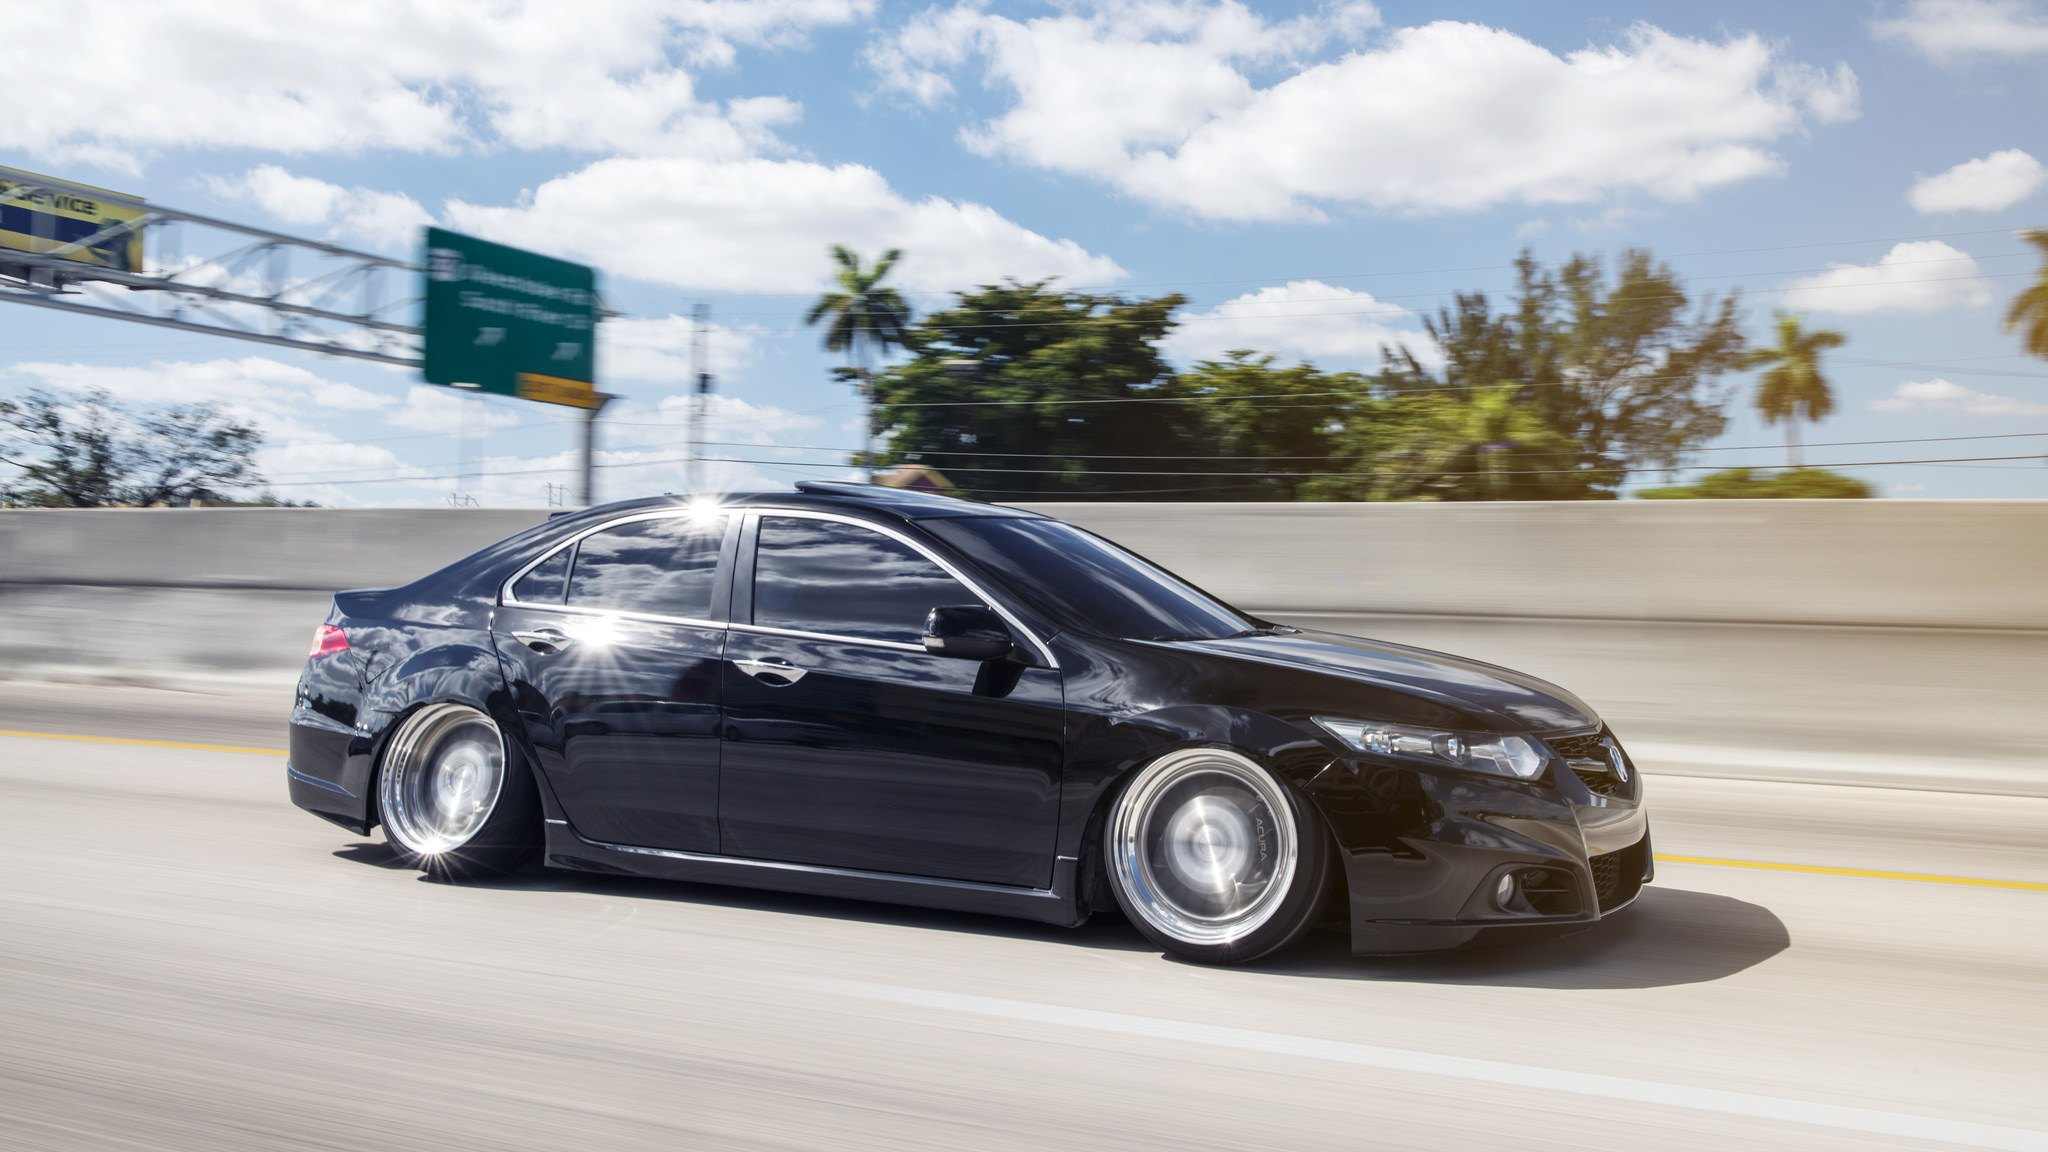 Slammed Tsx With Radical Camber And Polished Rotiform Rims Carid Com Gallery